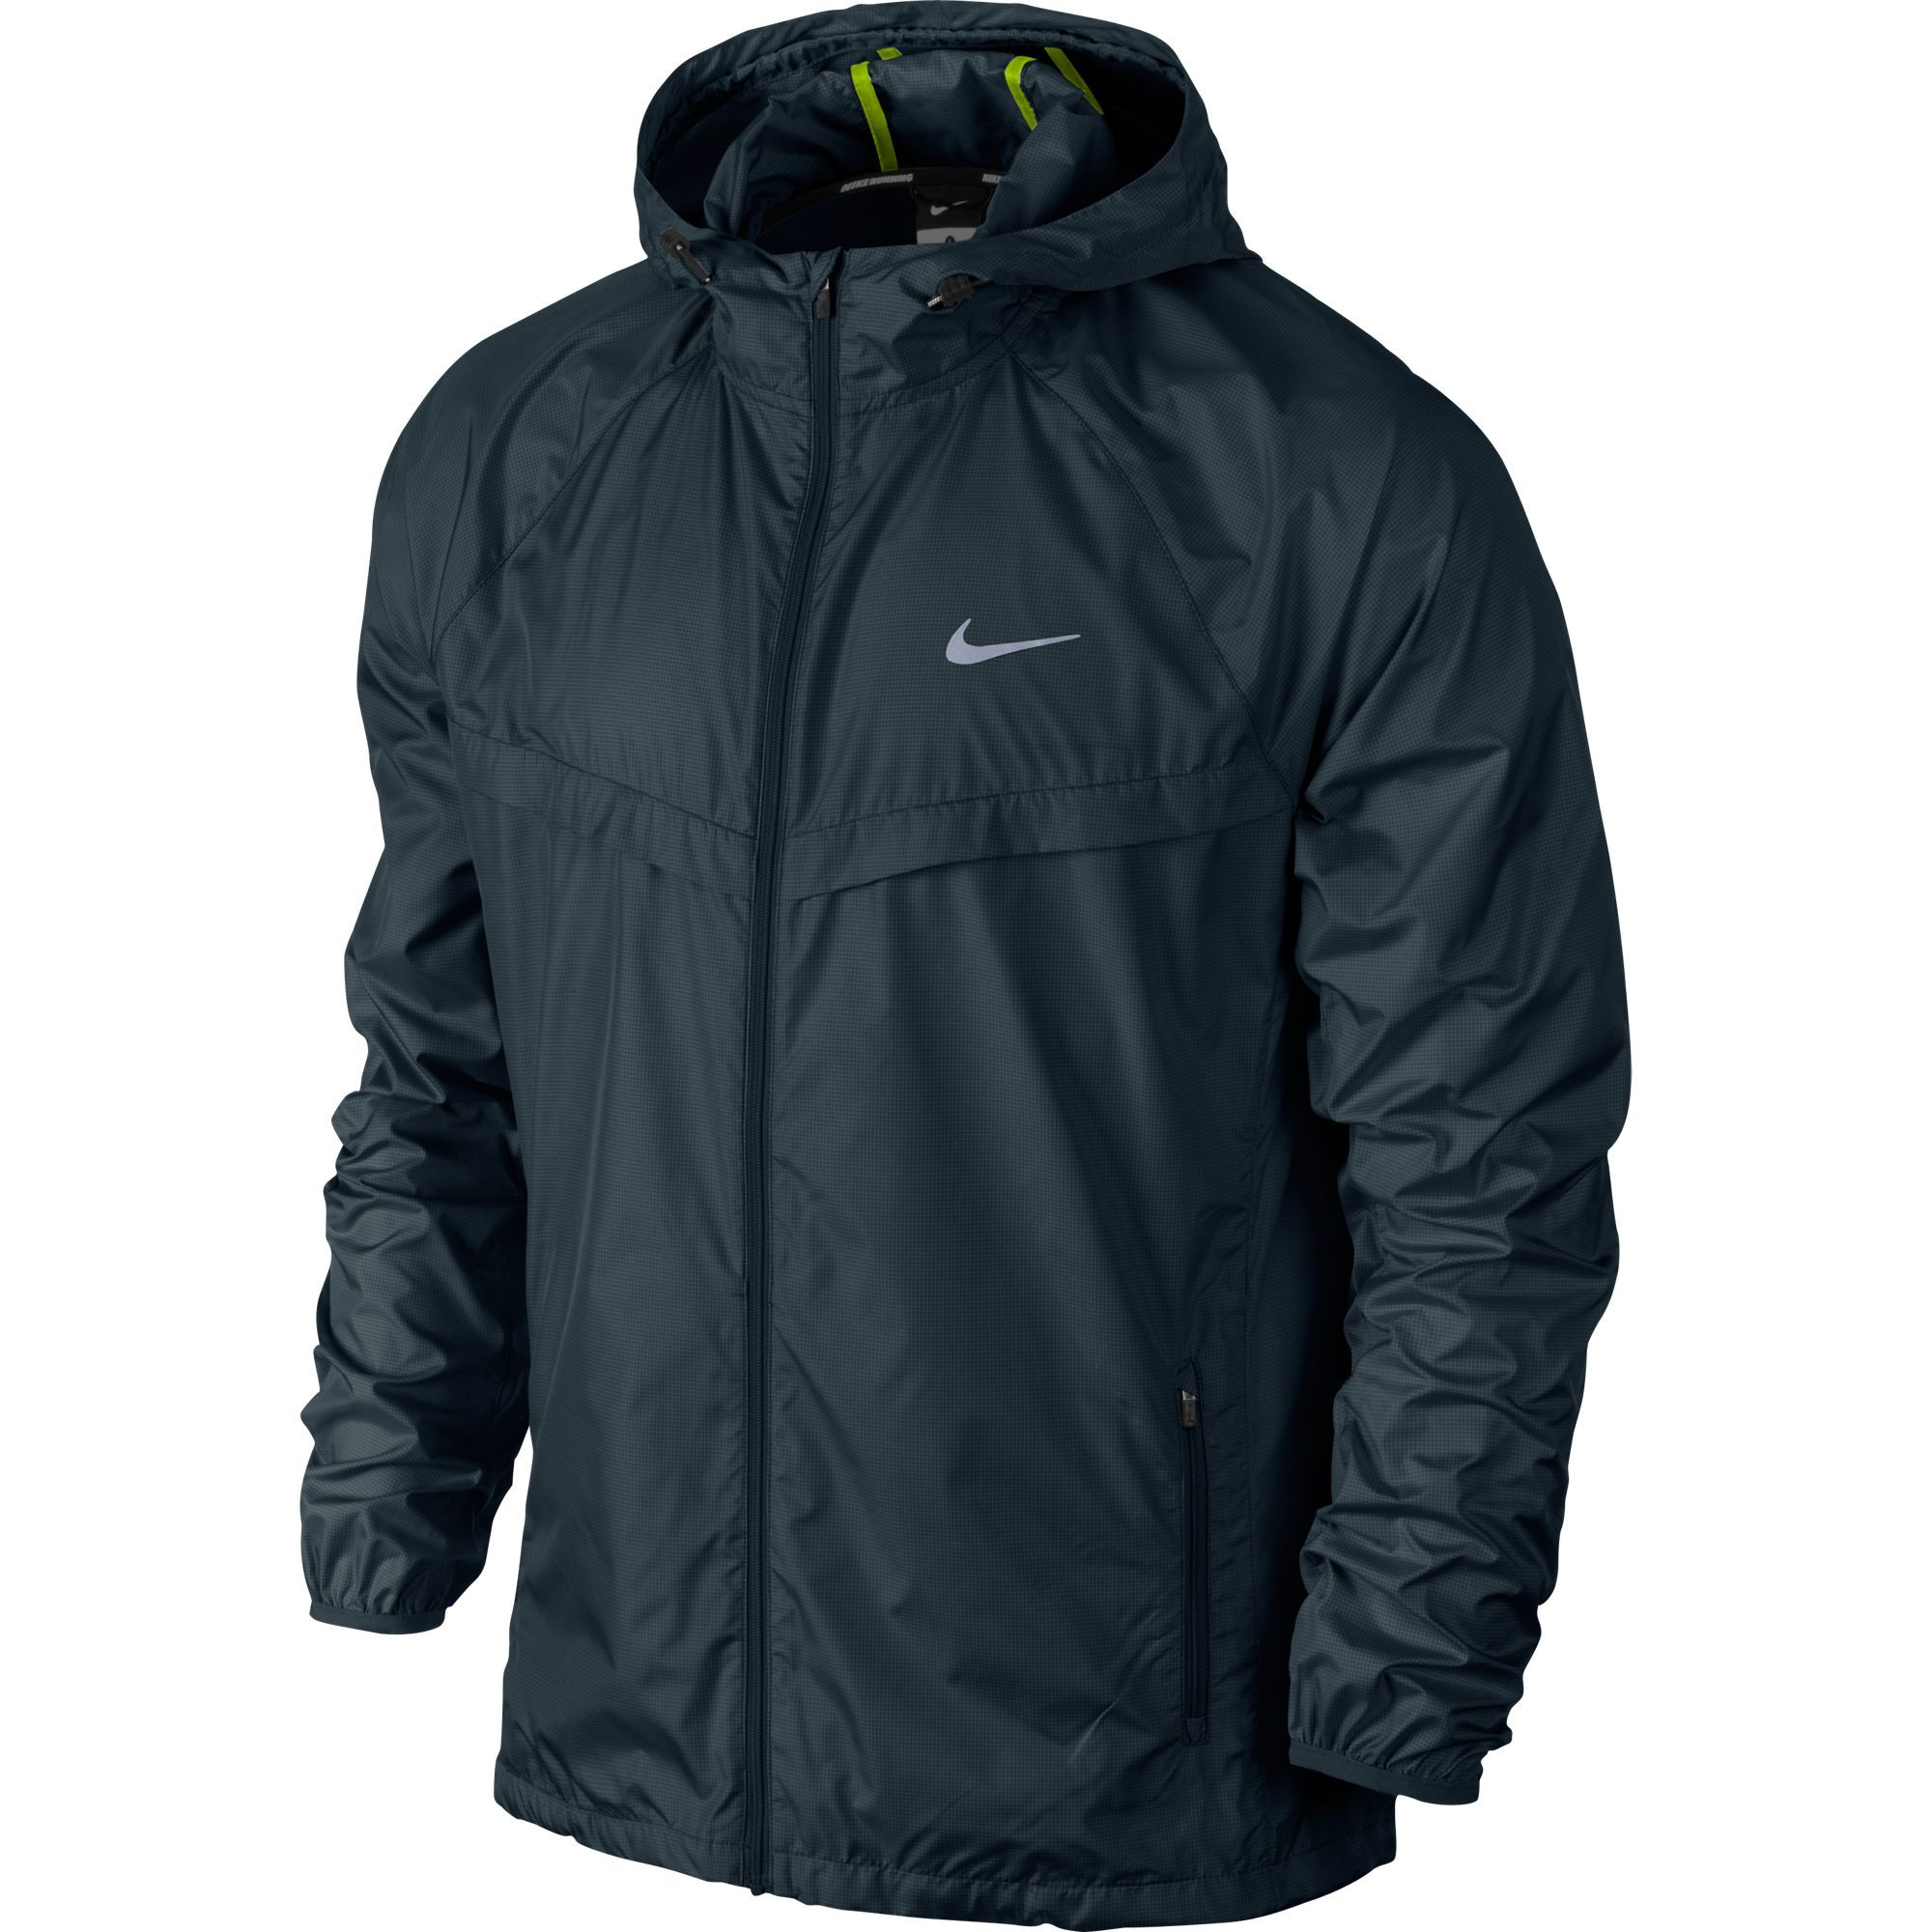 vestes de running coupe vent nike racer jacket sp14 wiggle france. Black Bedroom Furniture Sets. Home Design Ideas